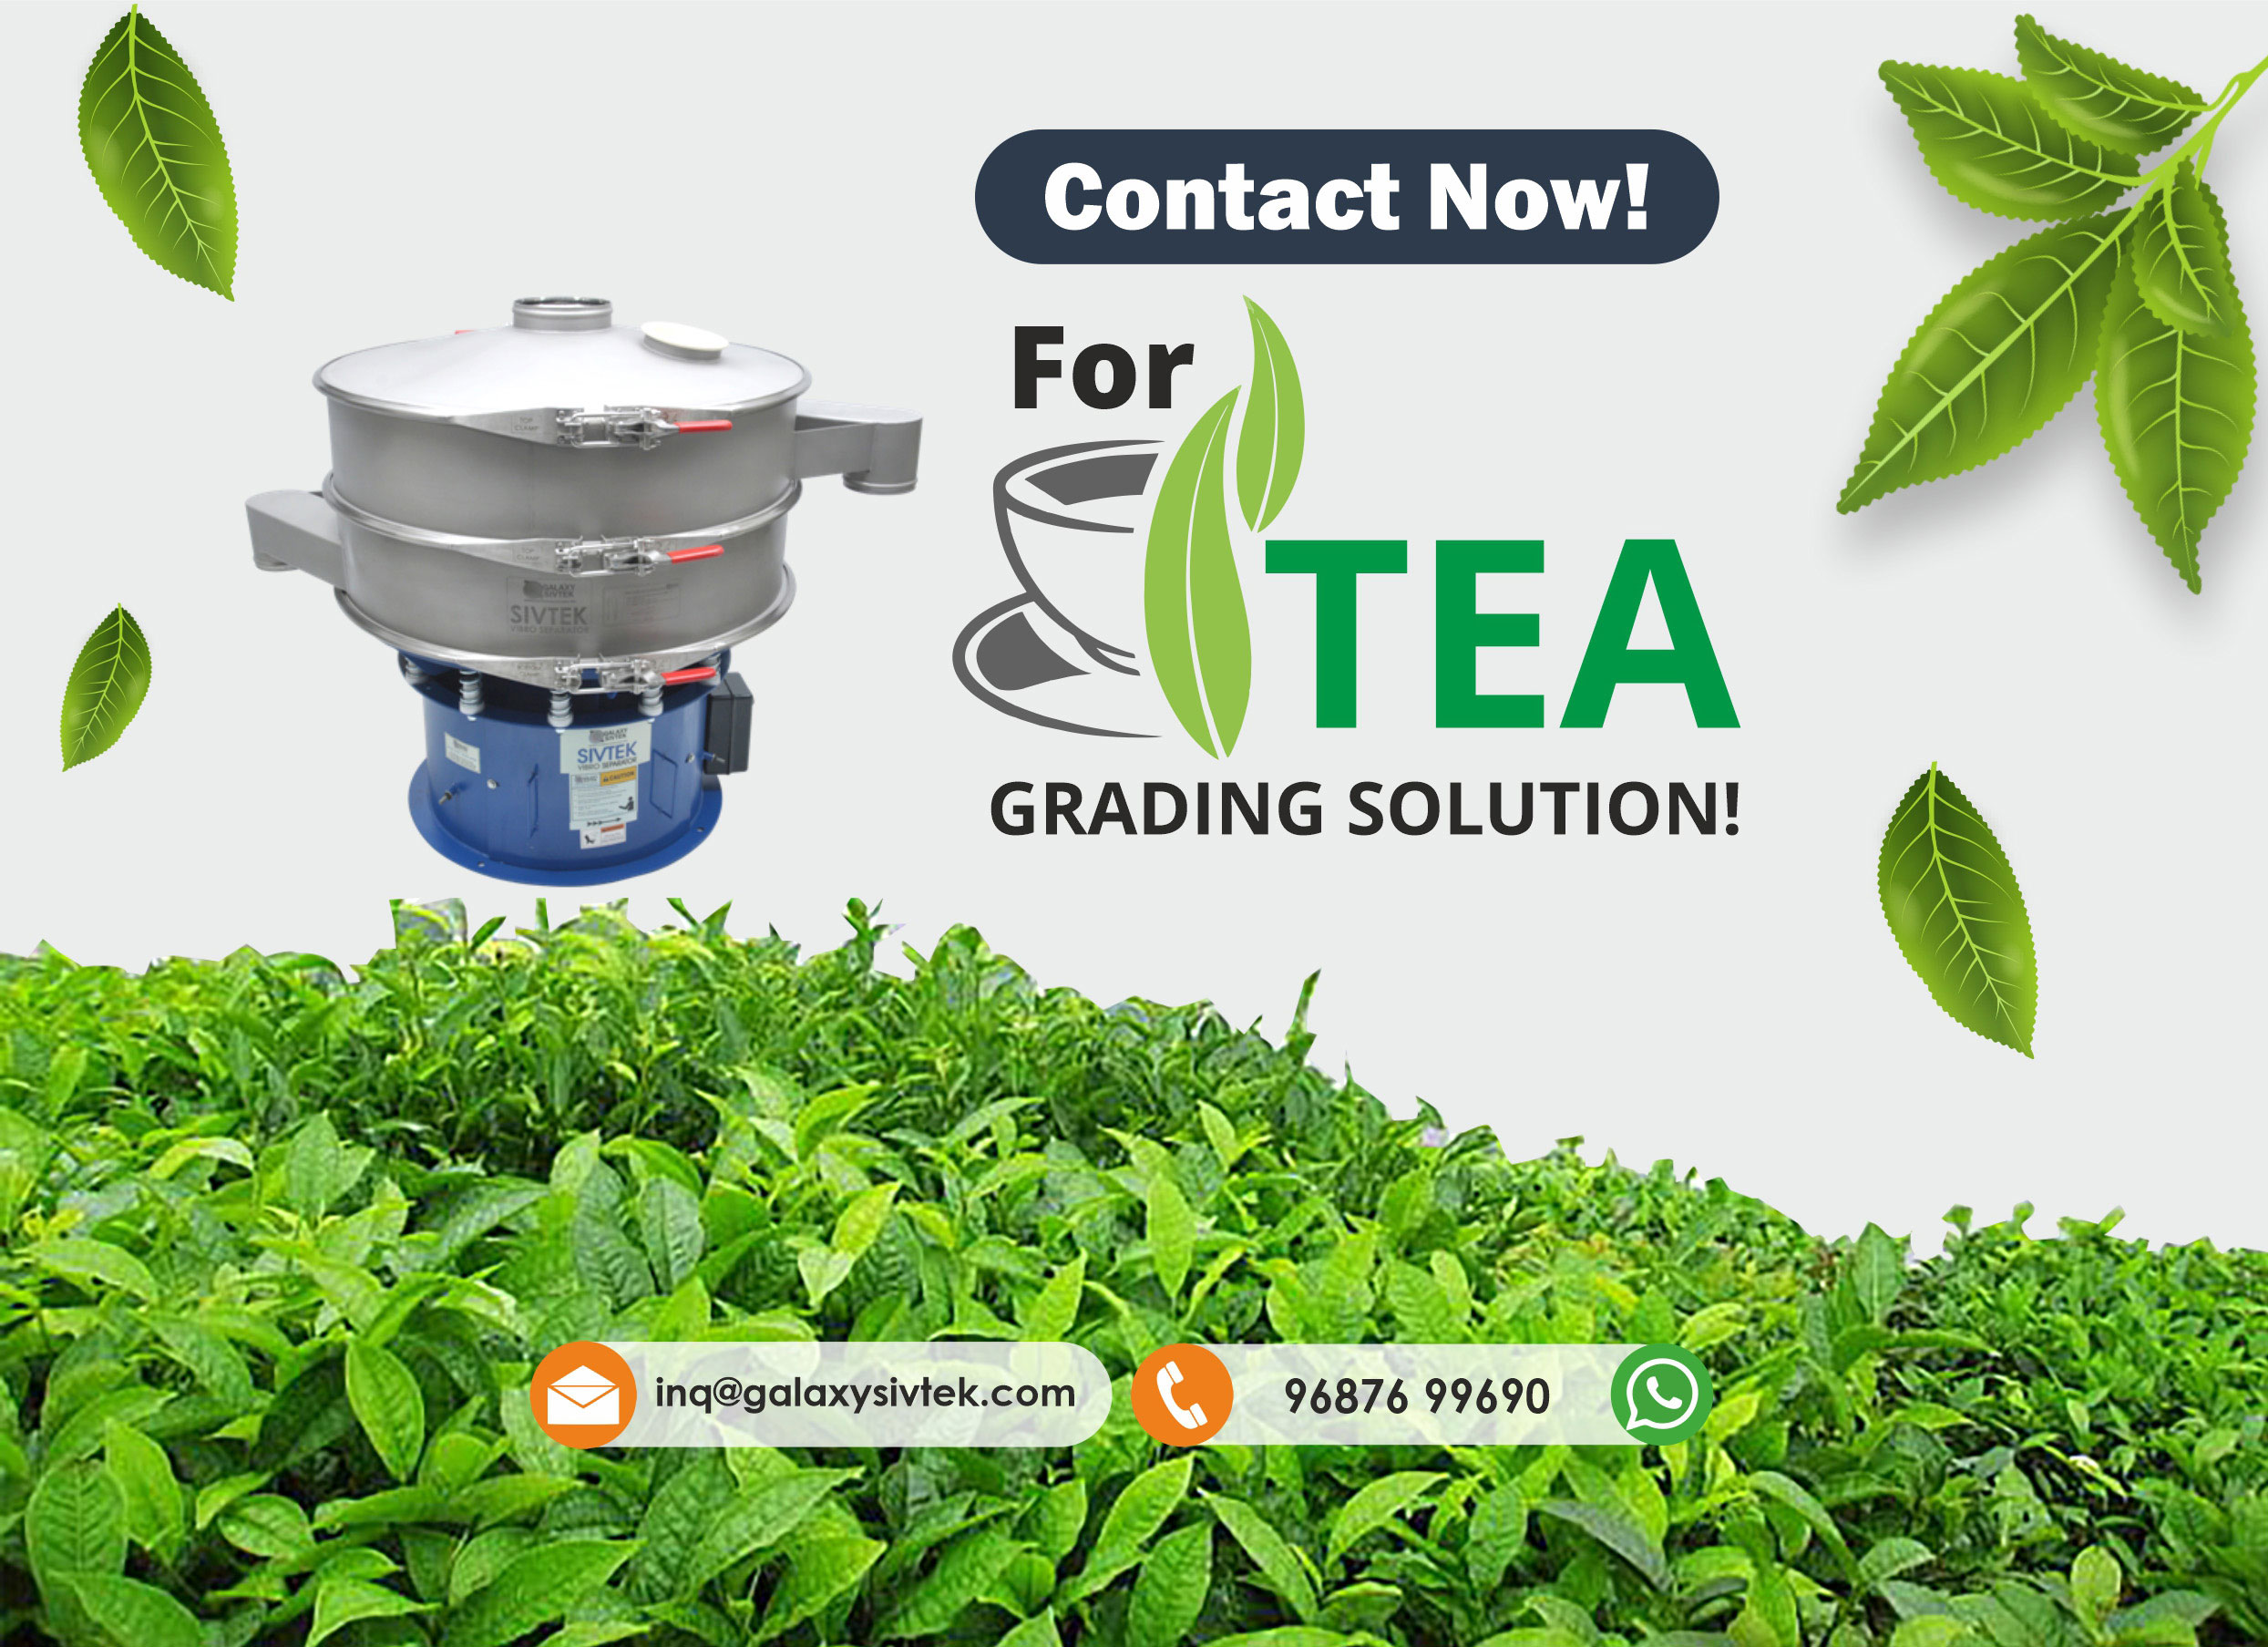 Contact us for tea grading